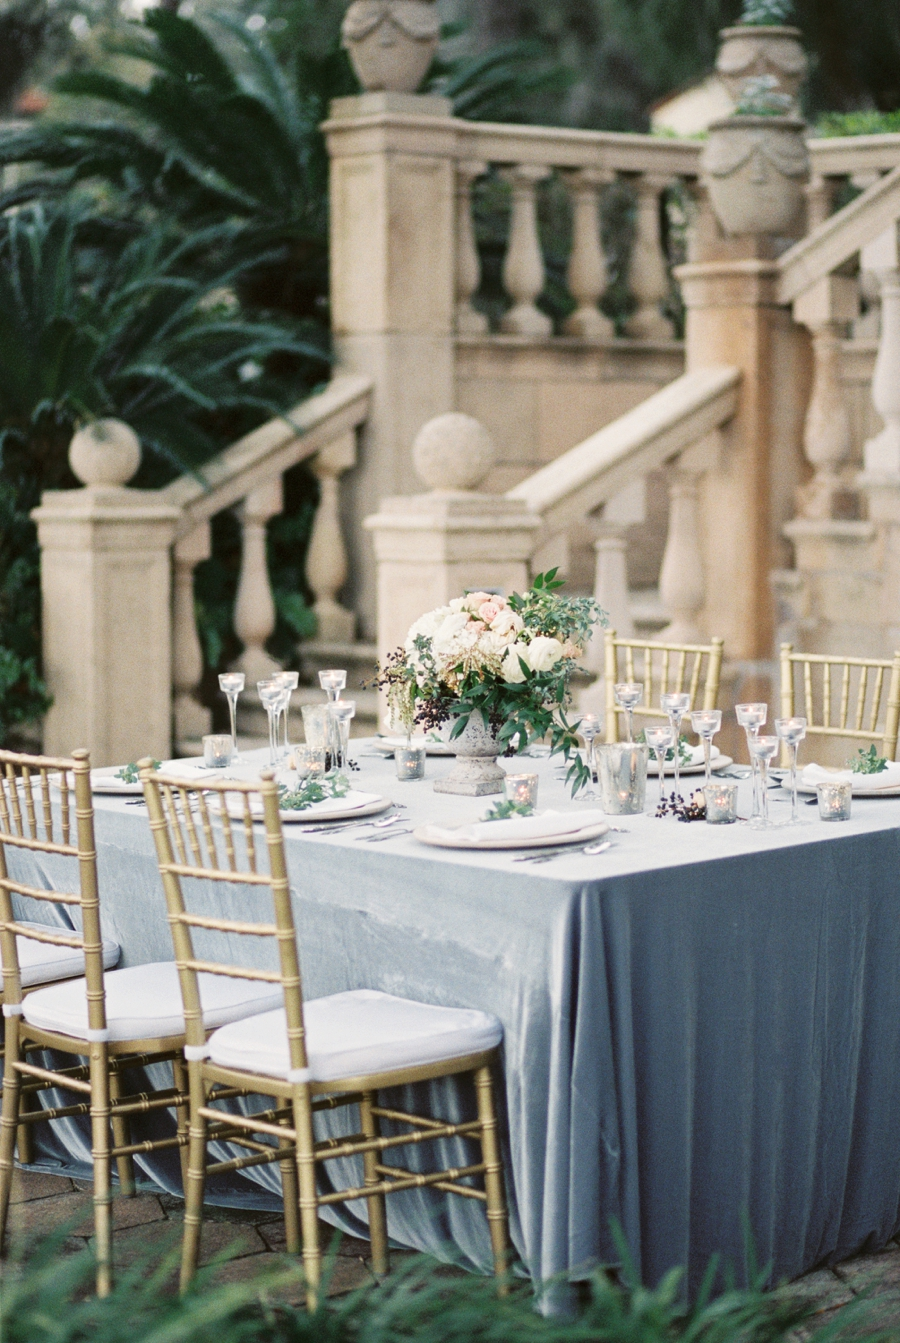 Romantic European Inspired Wedding Ideas via TheELD.com